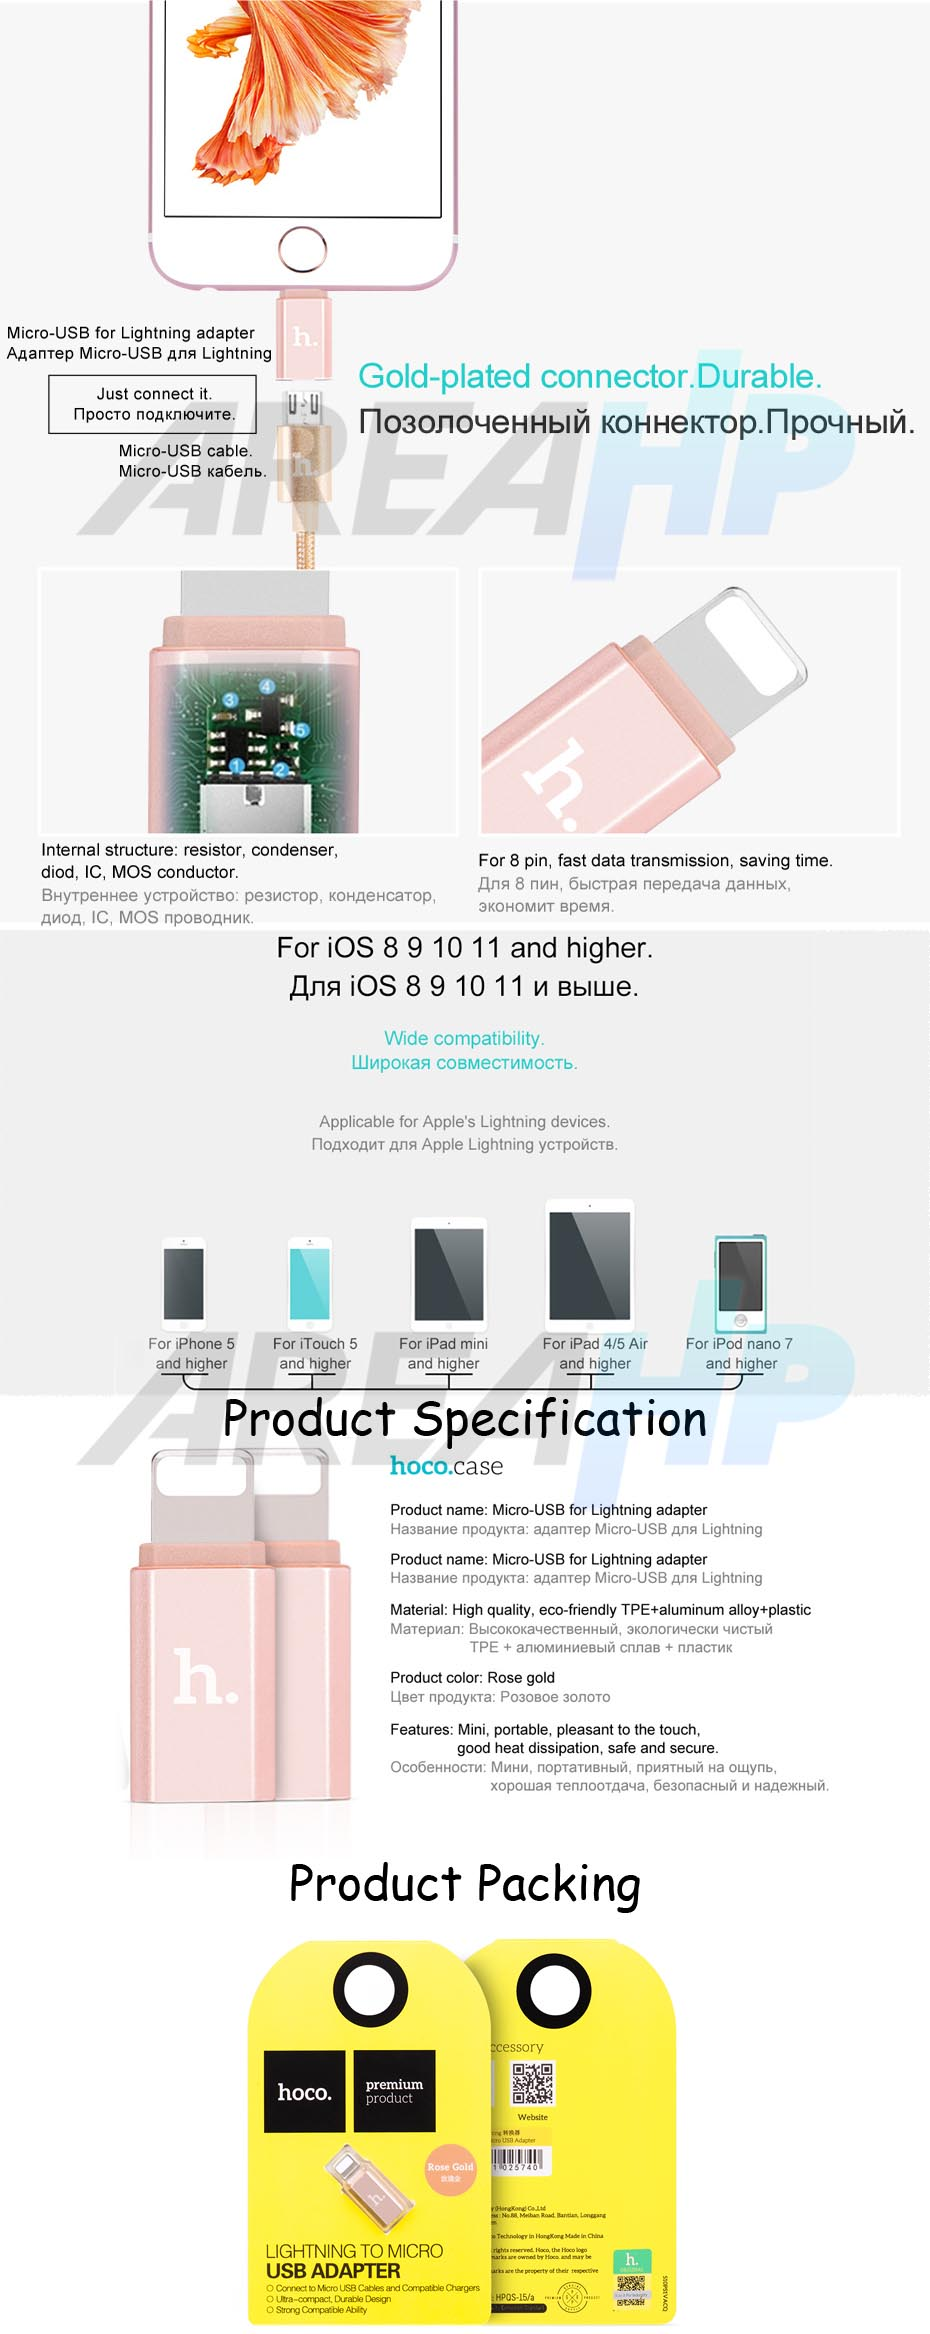 Hoco Micro to Apple Lightning USB Adapter Converter Overview